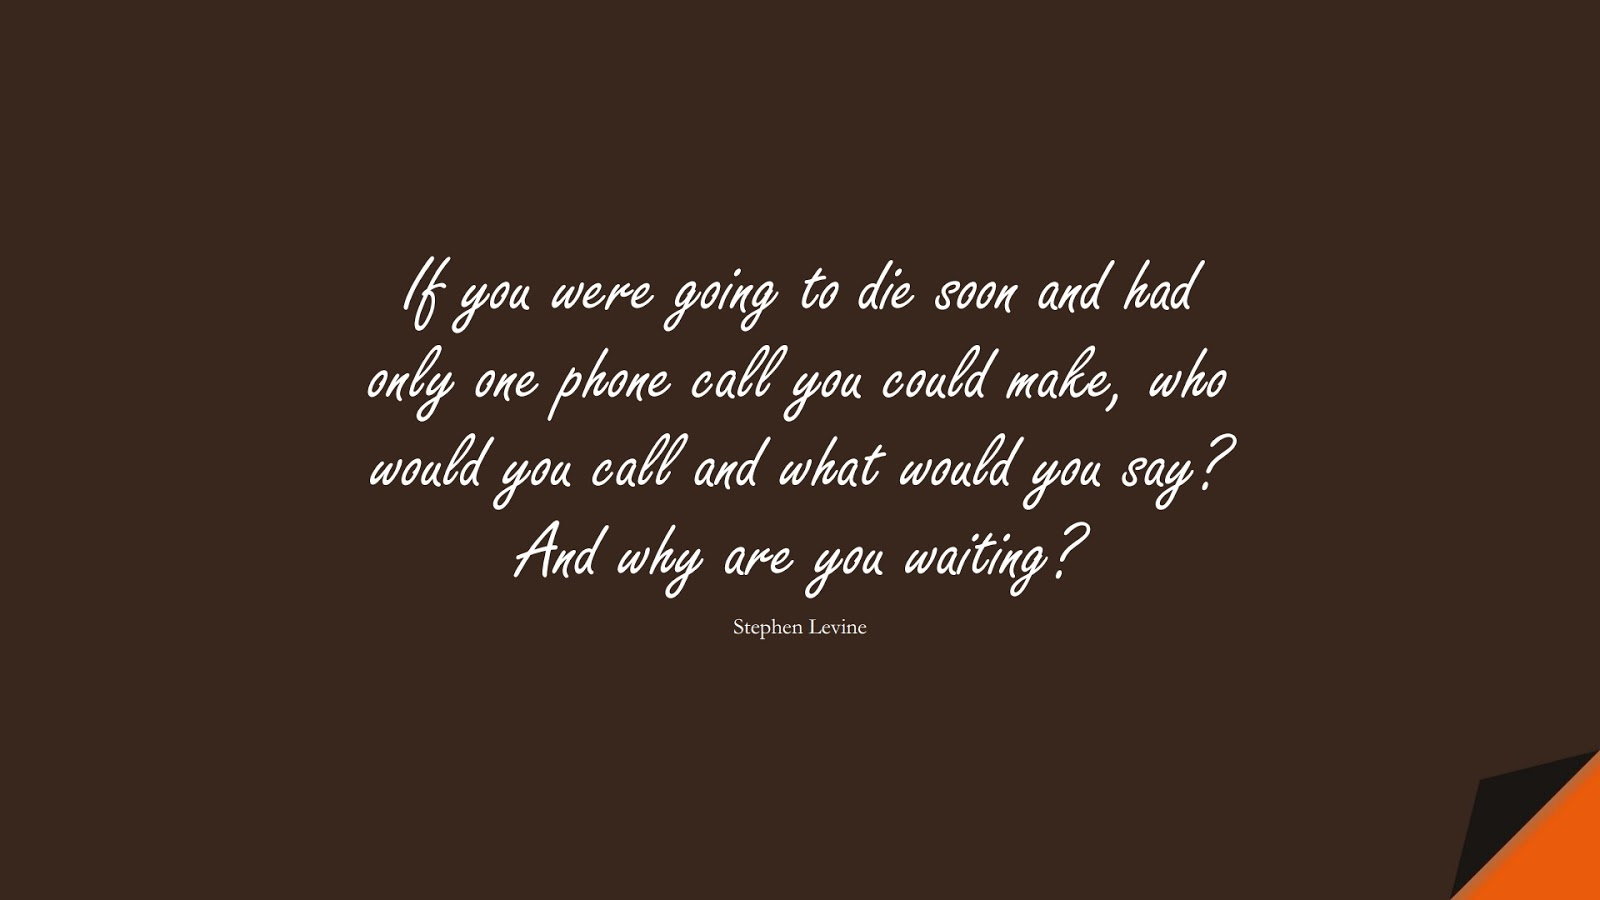 If you were going to die soon and had only one phone call you could make, who would you call and what would you say? And why are you waiting? (Stephen Levine);  #RelationshipQuotes